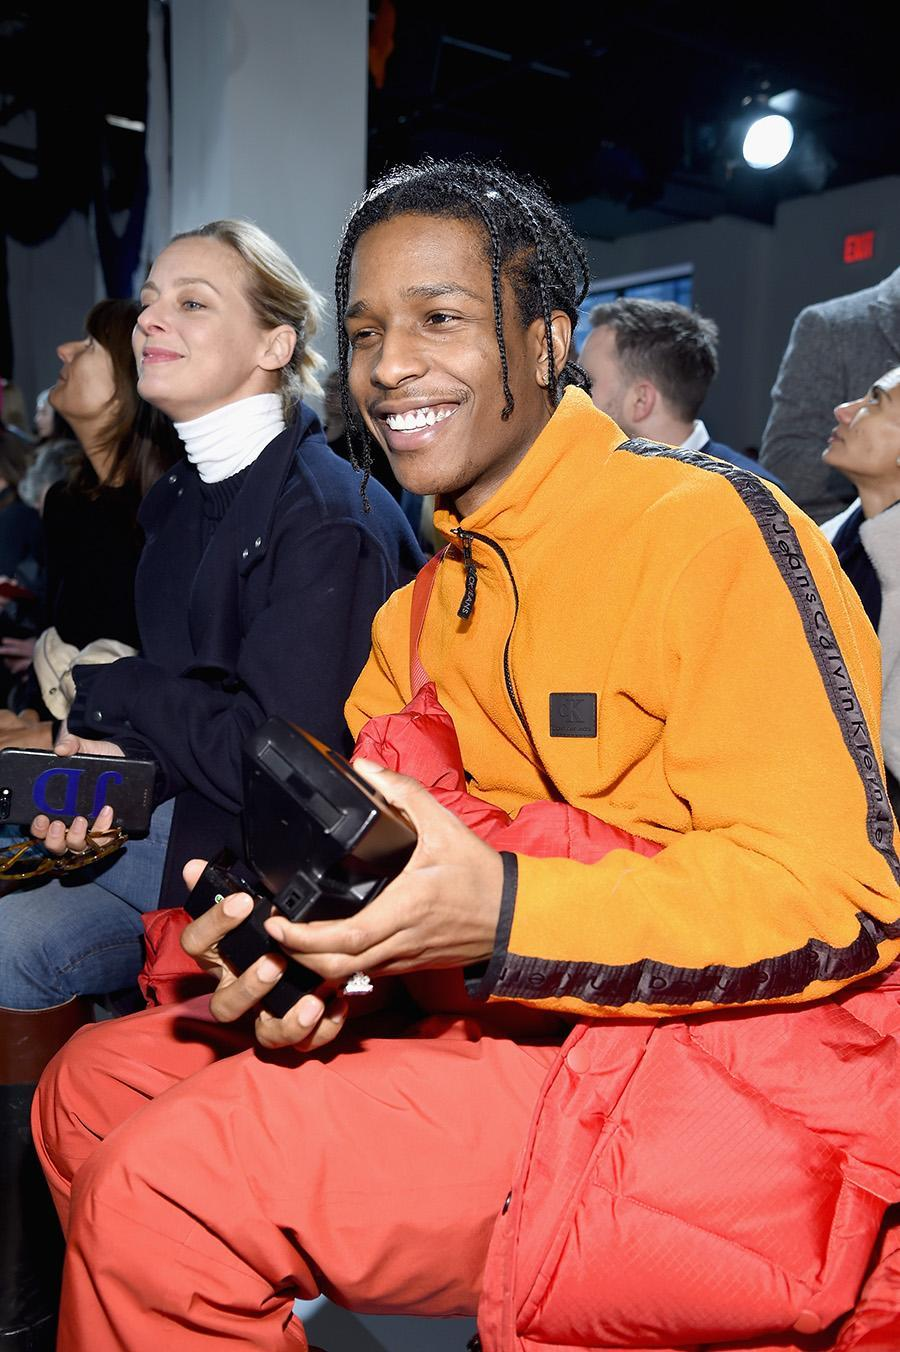 <p>Rapper A$AP Rocky wore an orange jacket that featured the name of the label on the sleeves to the show. (Photo: Getty Images) </p>